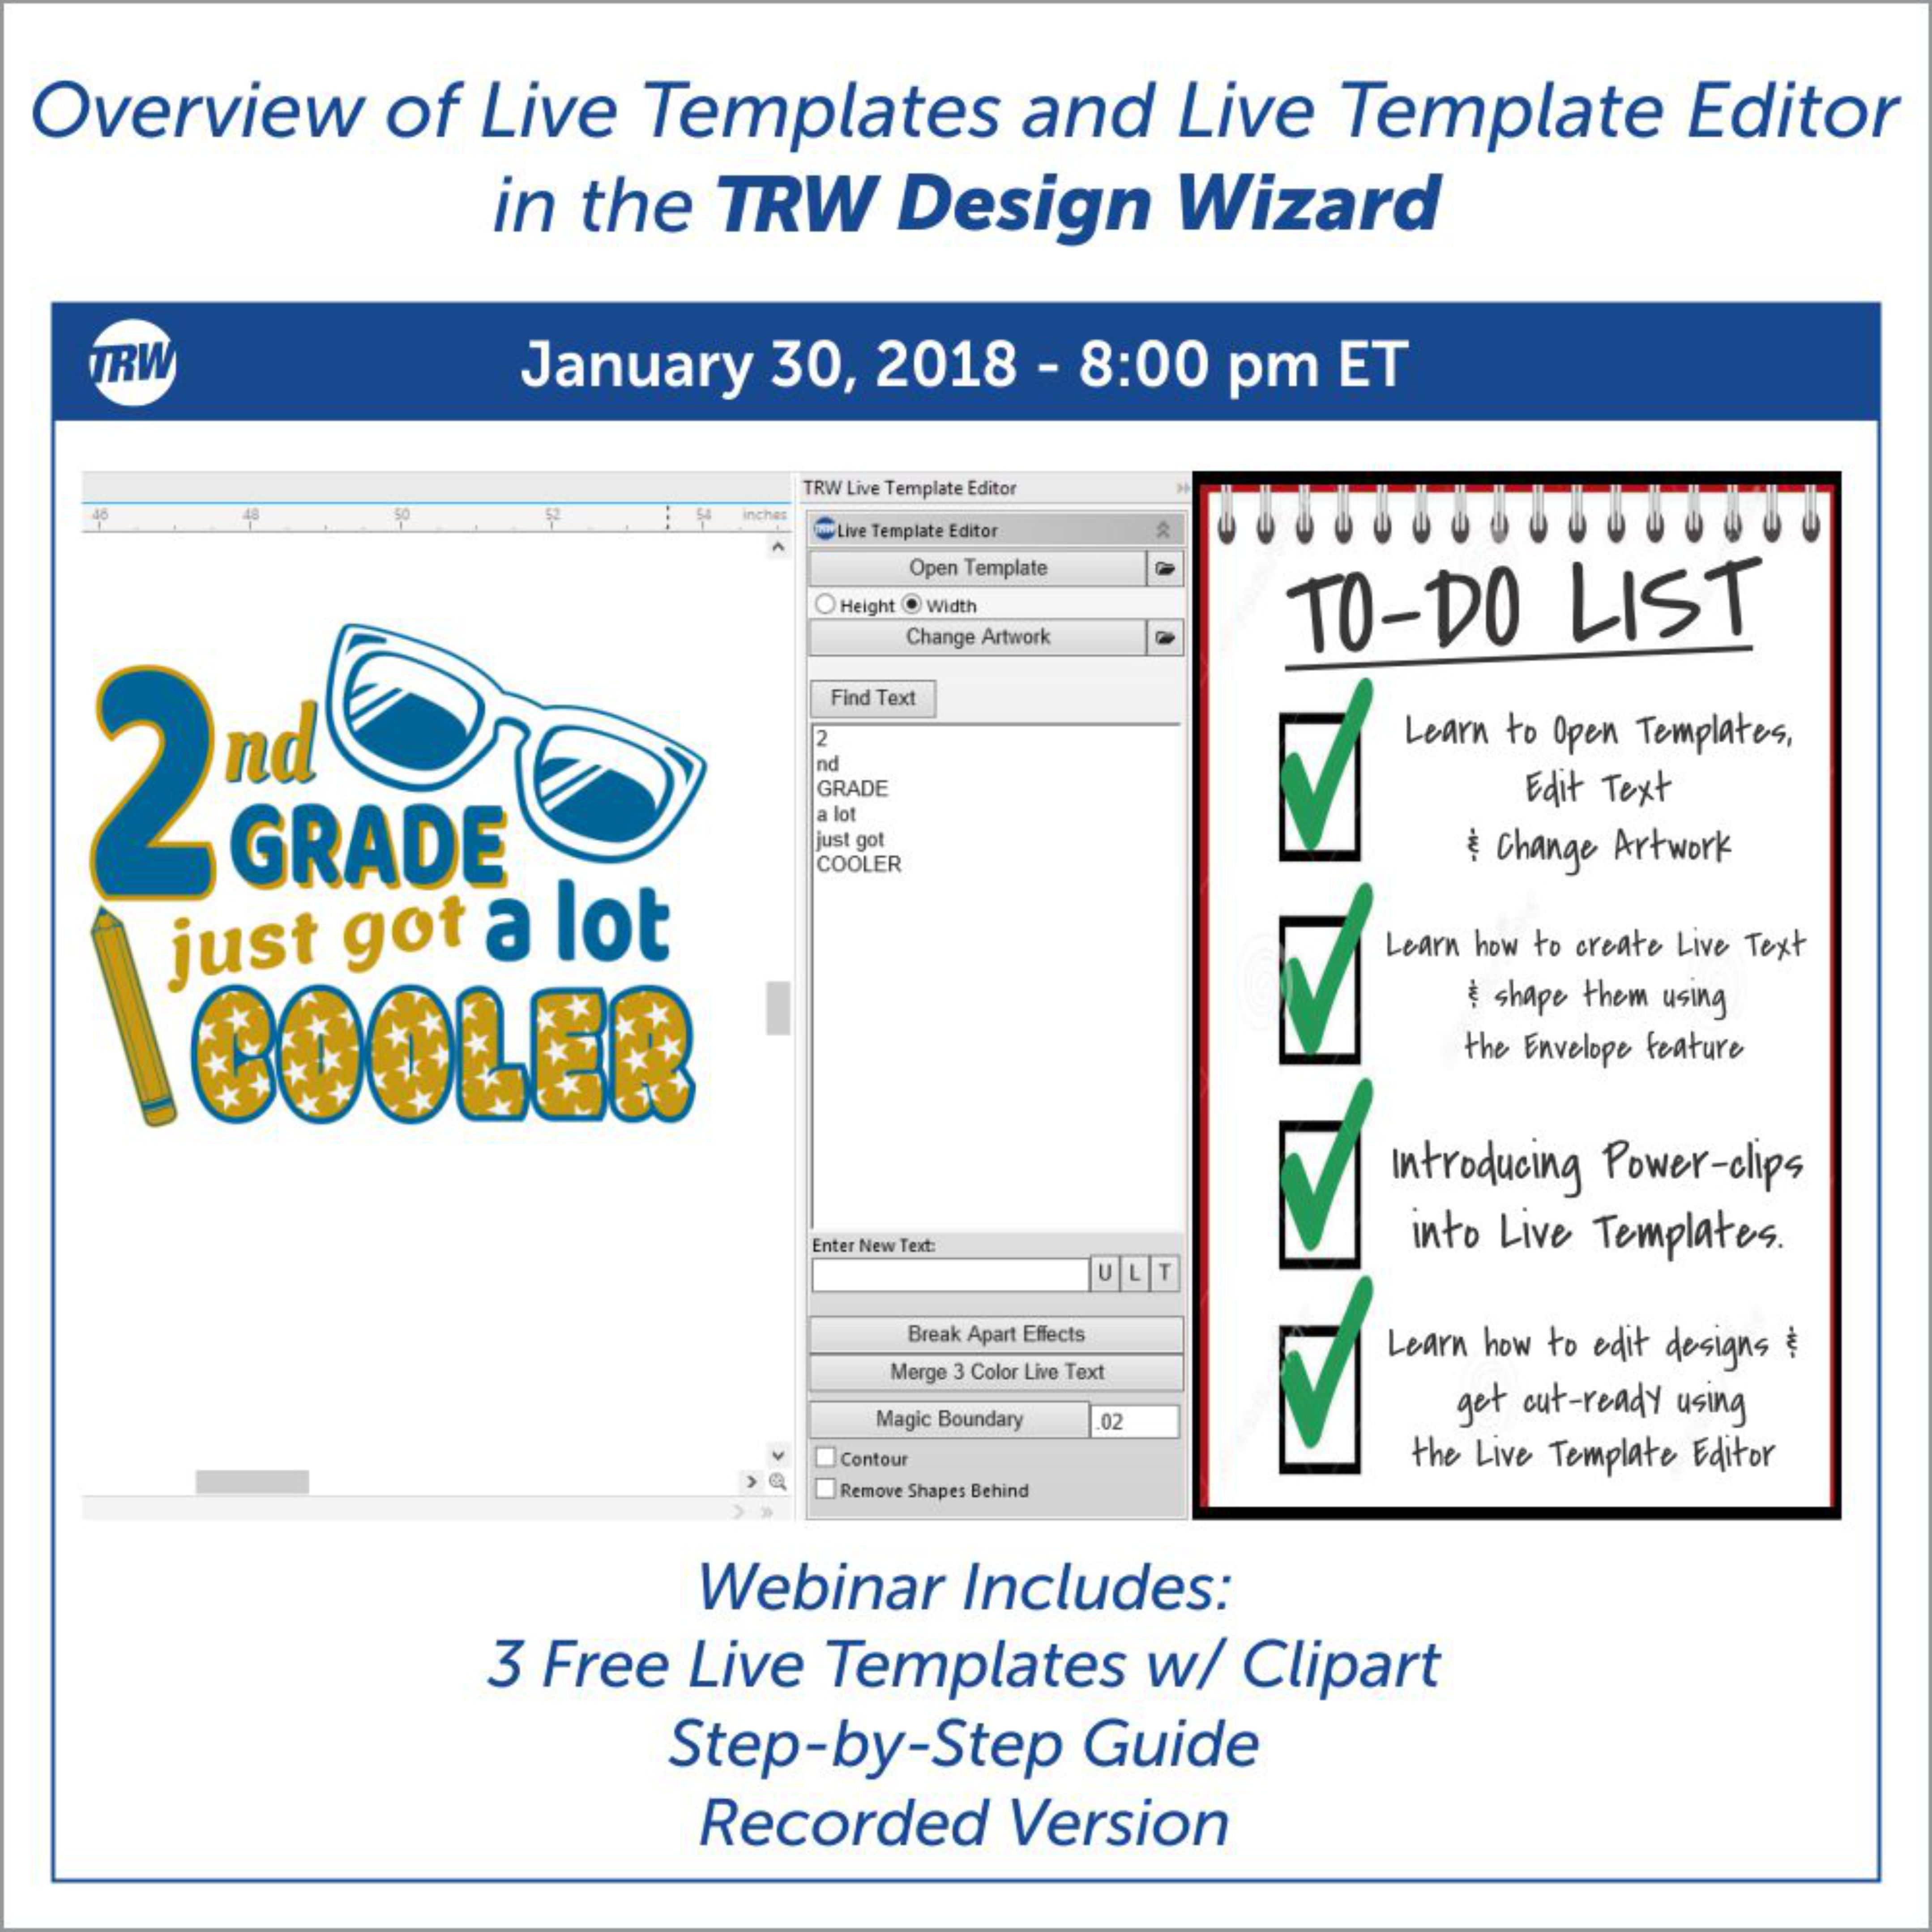 Overview of Live Templates and Live Template Editor - January 30th, 2018